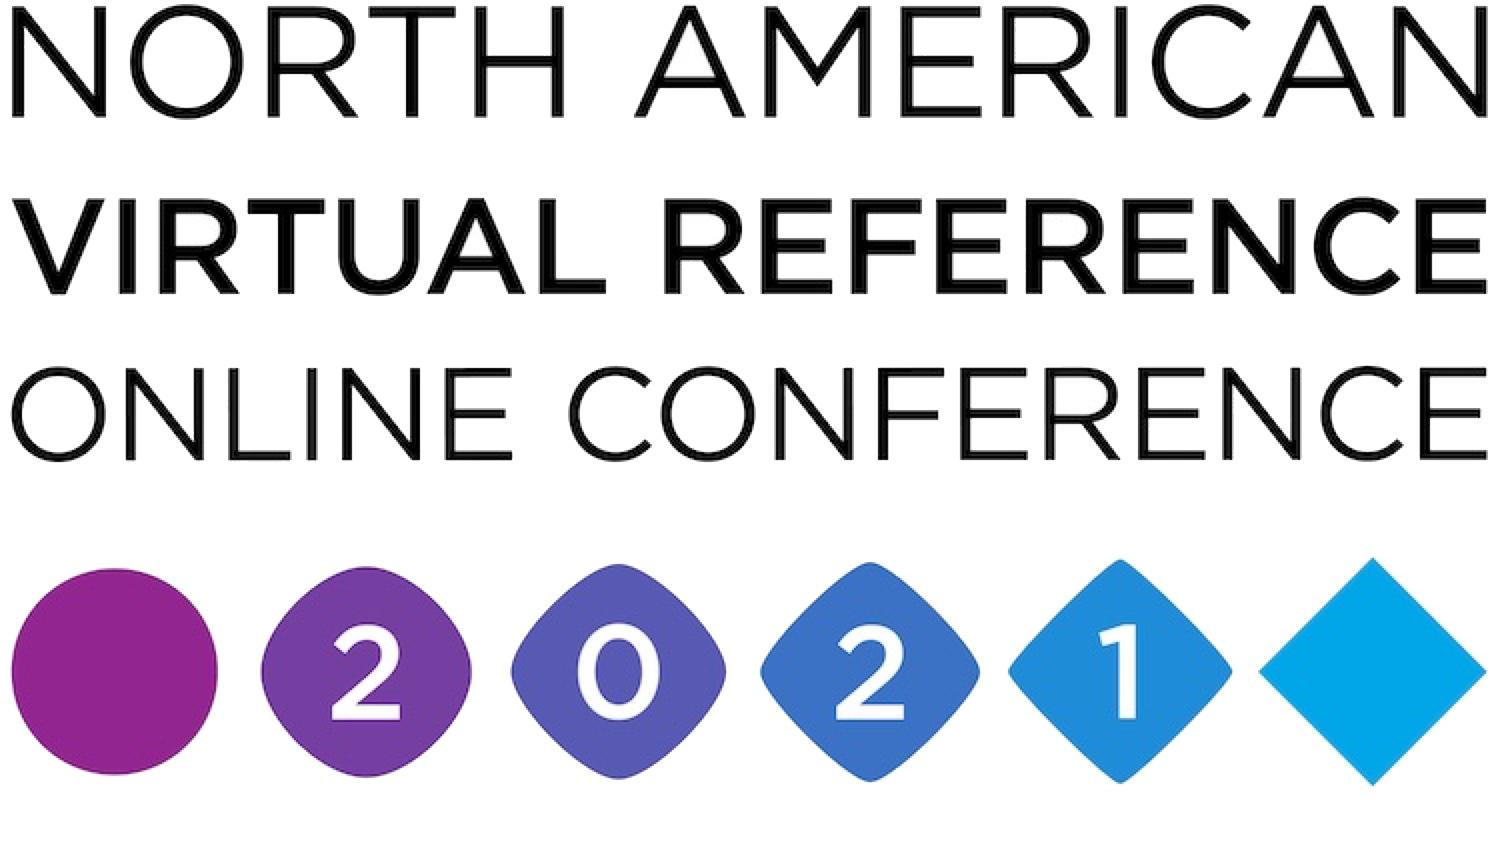 North American Virtual Reference Online Conference logo.